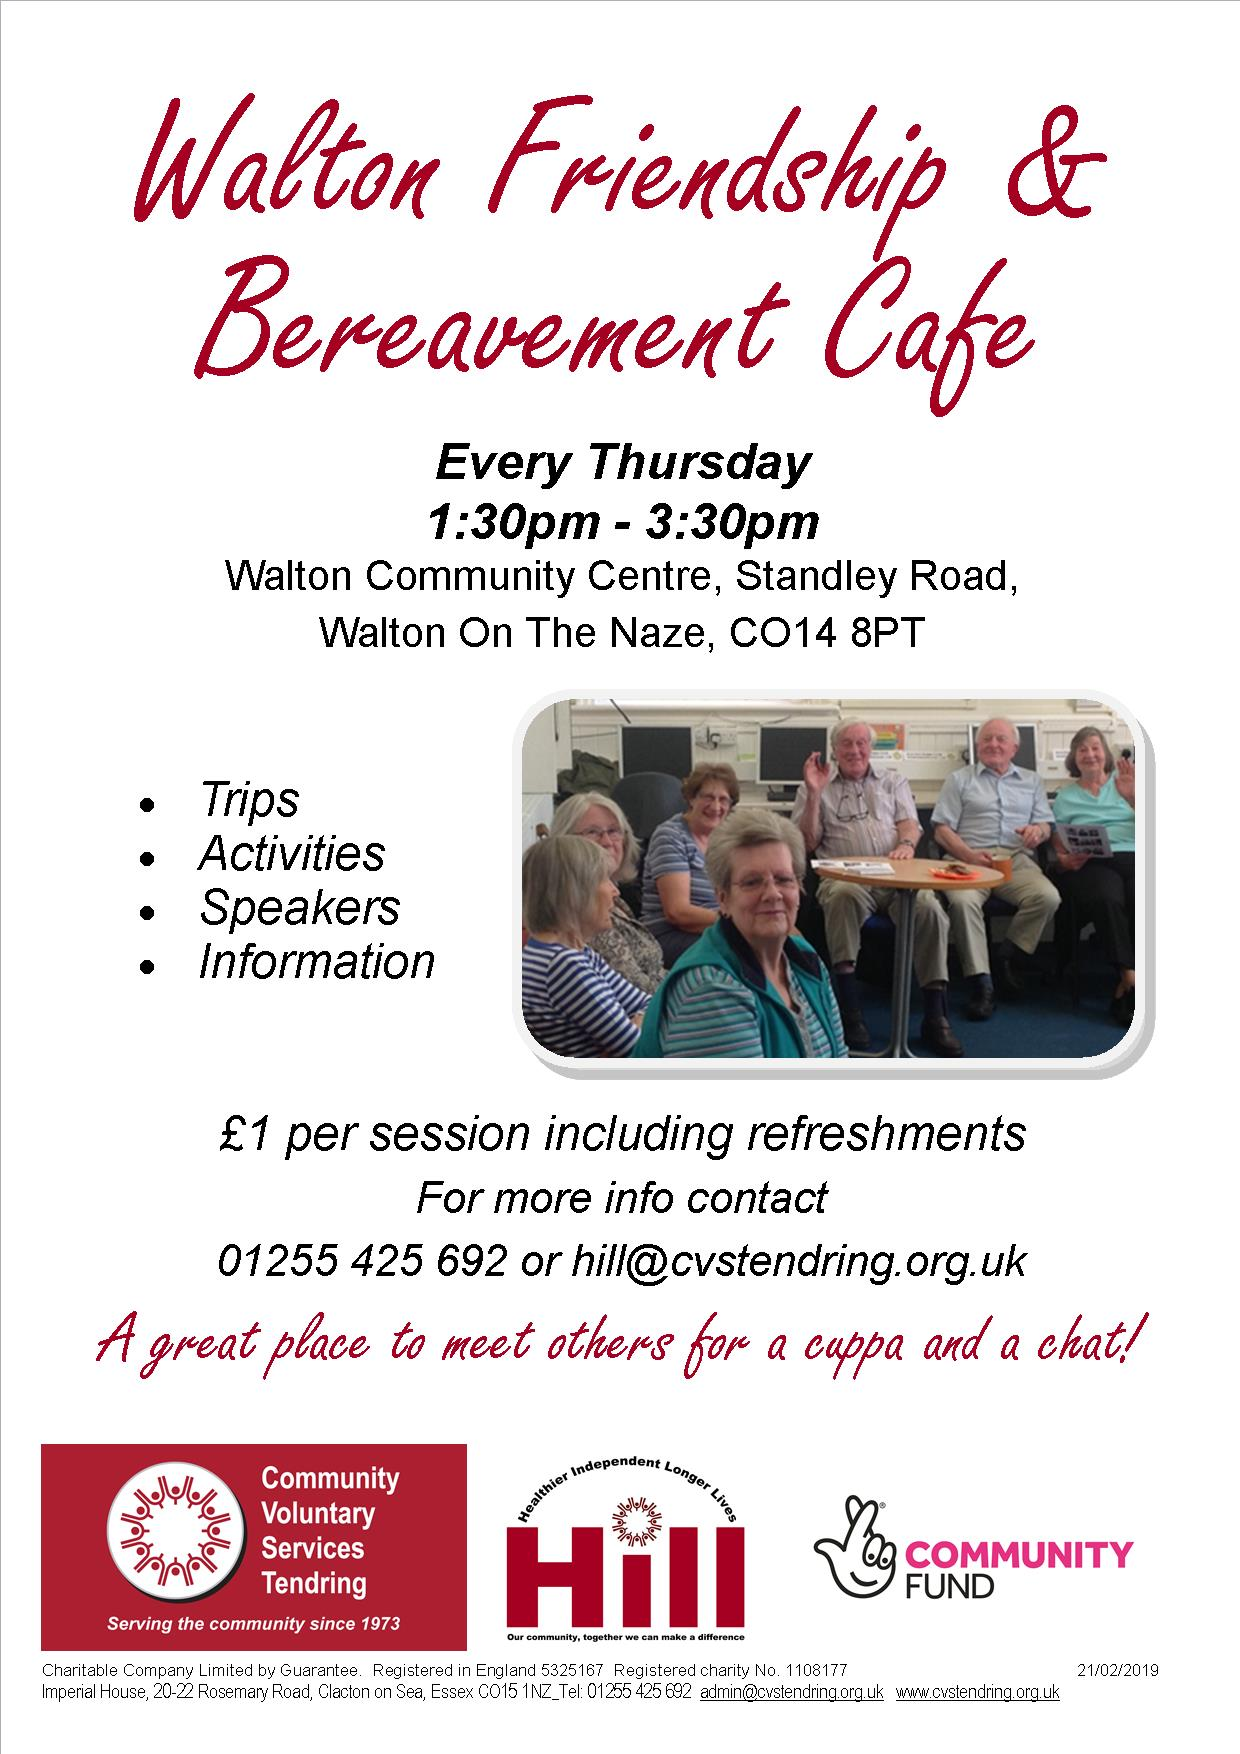 Walton Friendship & Bereavement Cafe